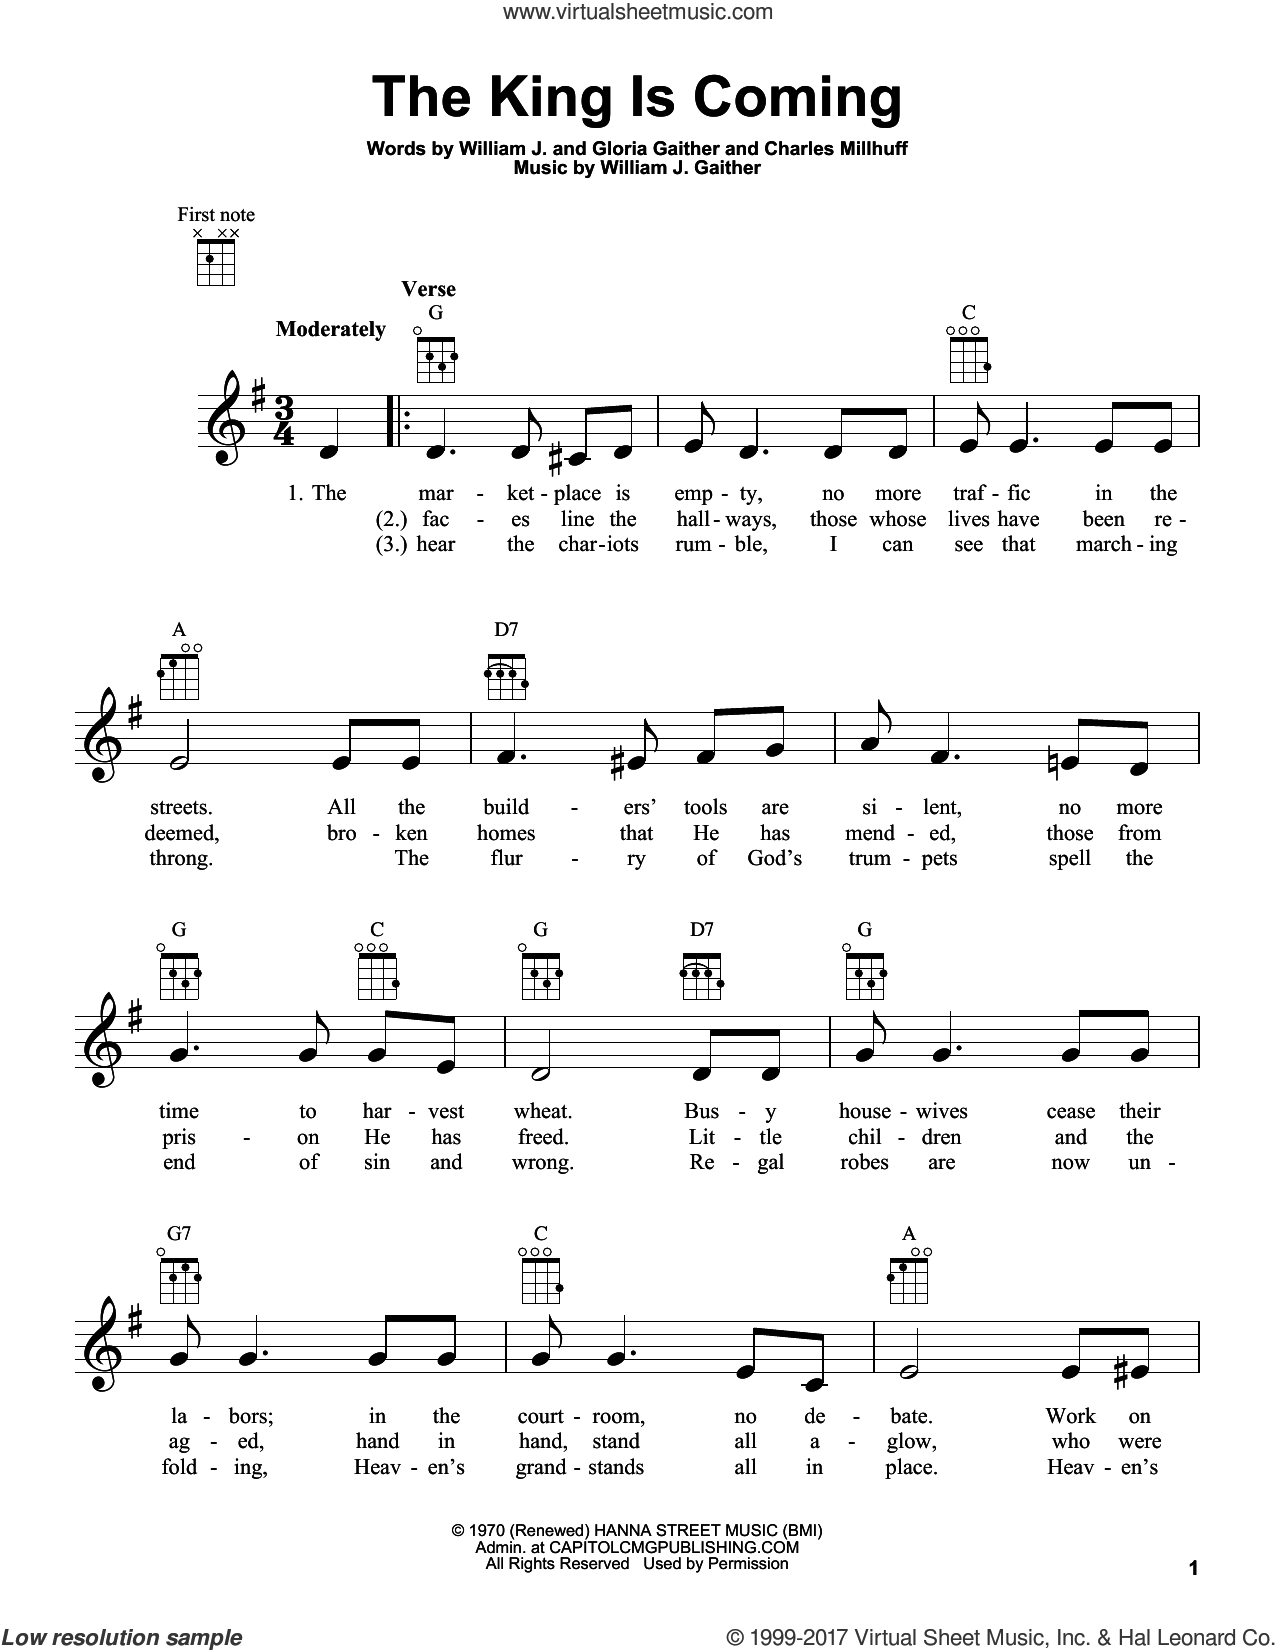 The King Is Coming sheet music for ukulele by Charles Millhuff, Gloria Gaither and William J. Gaither, intermediate